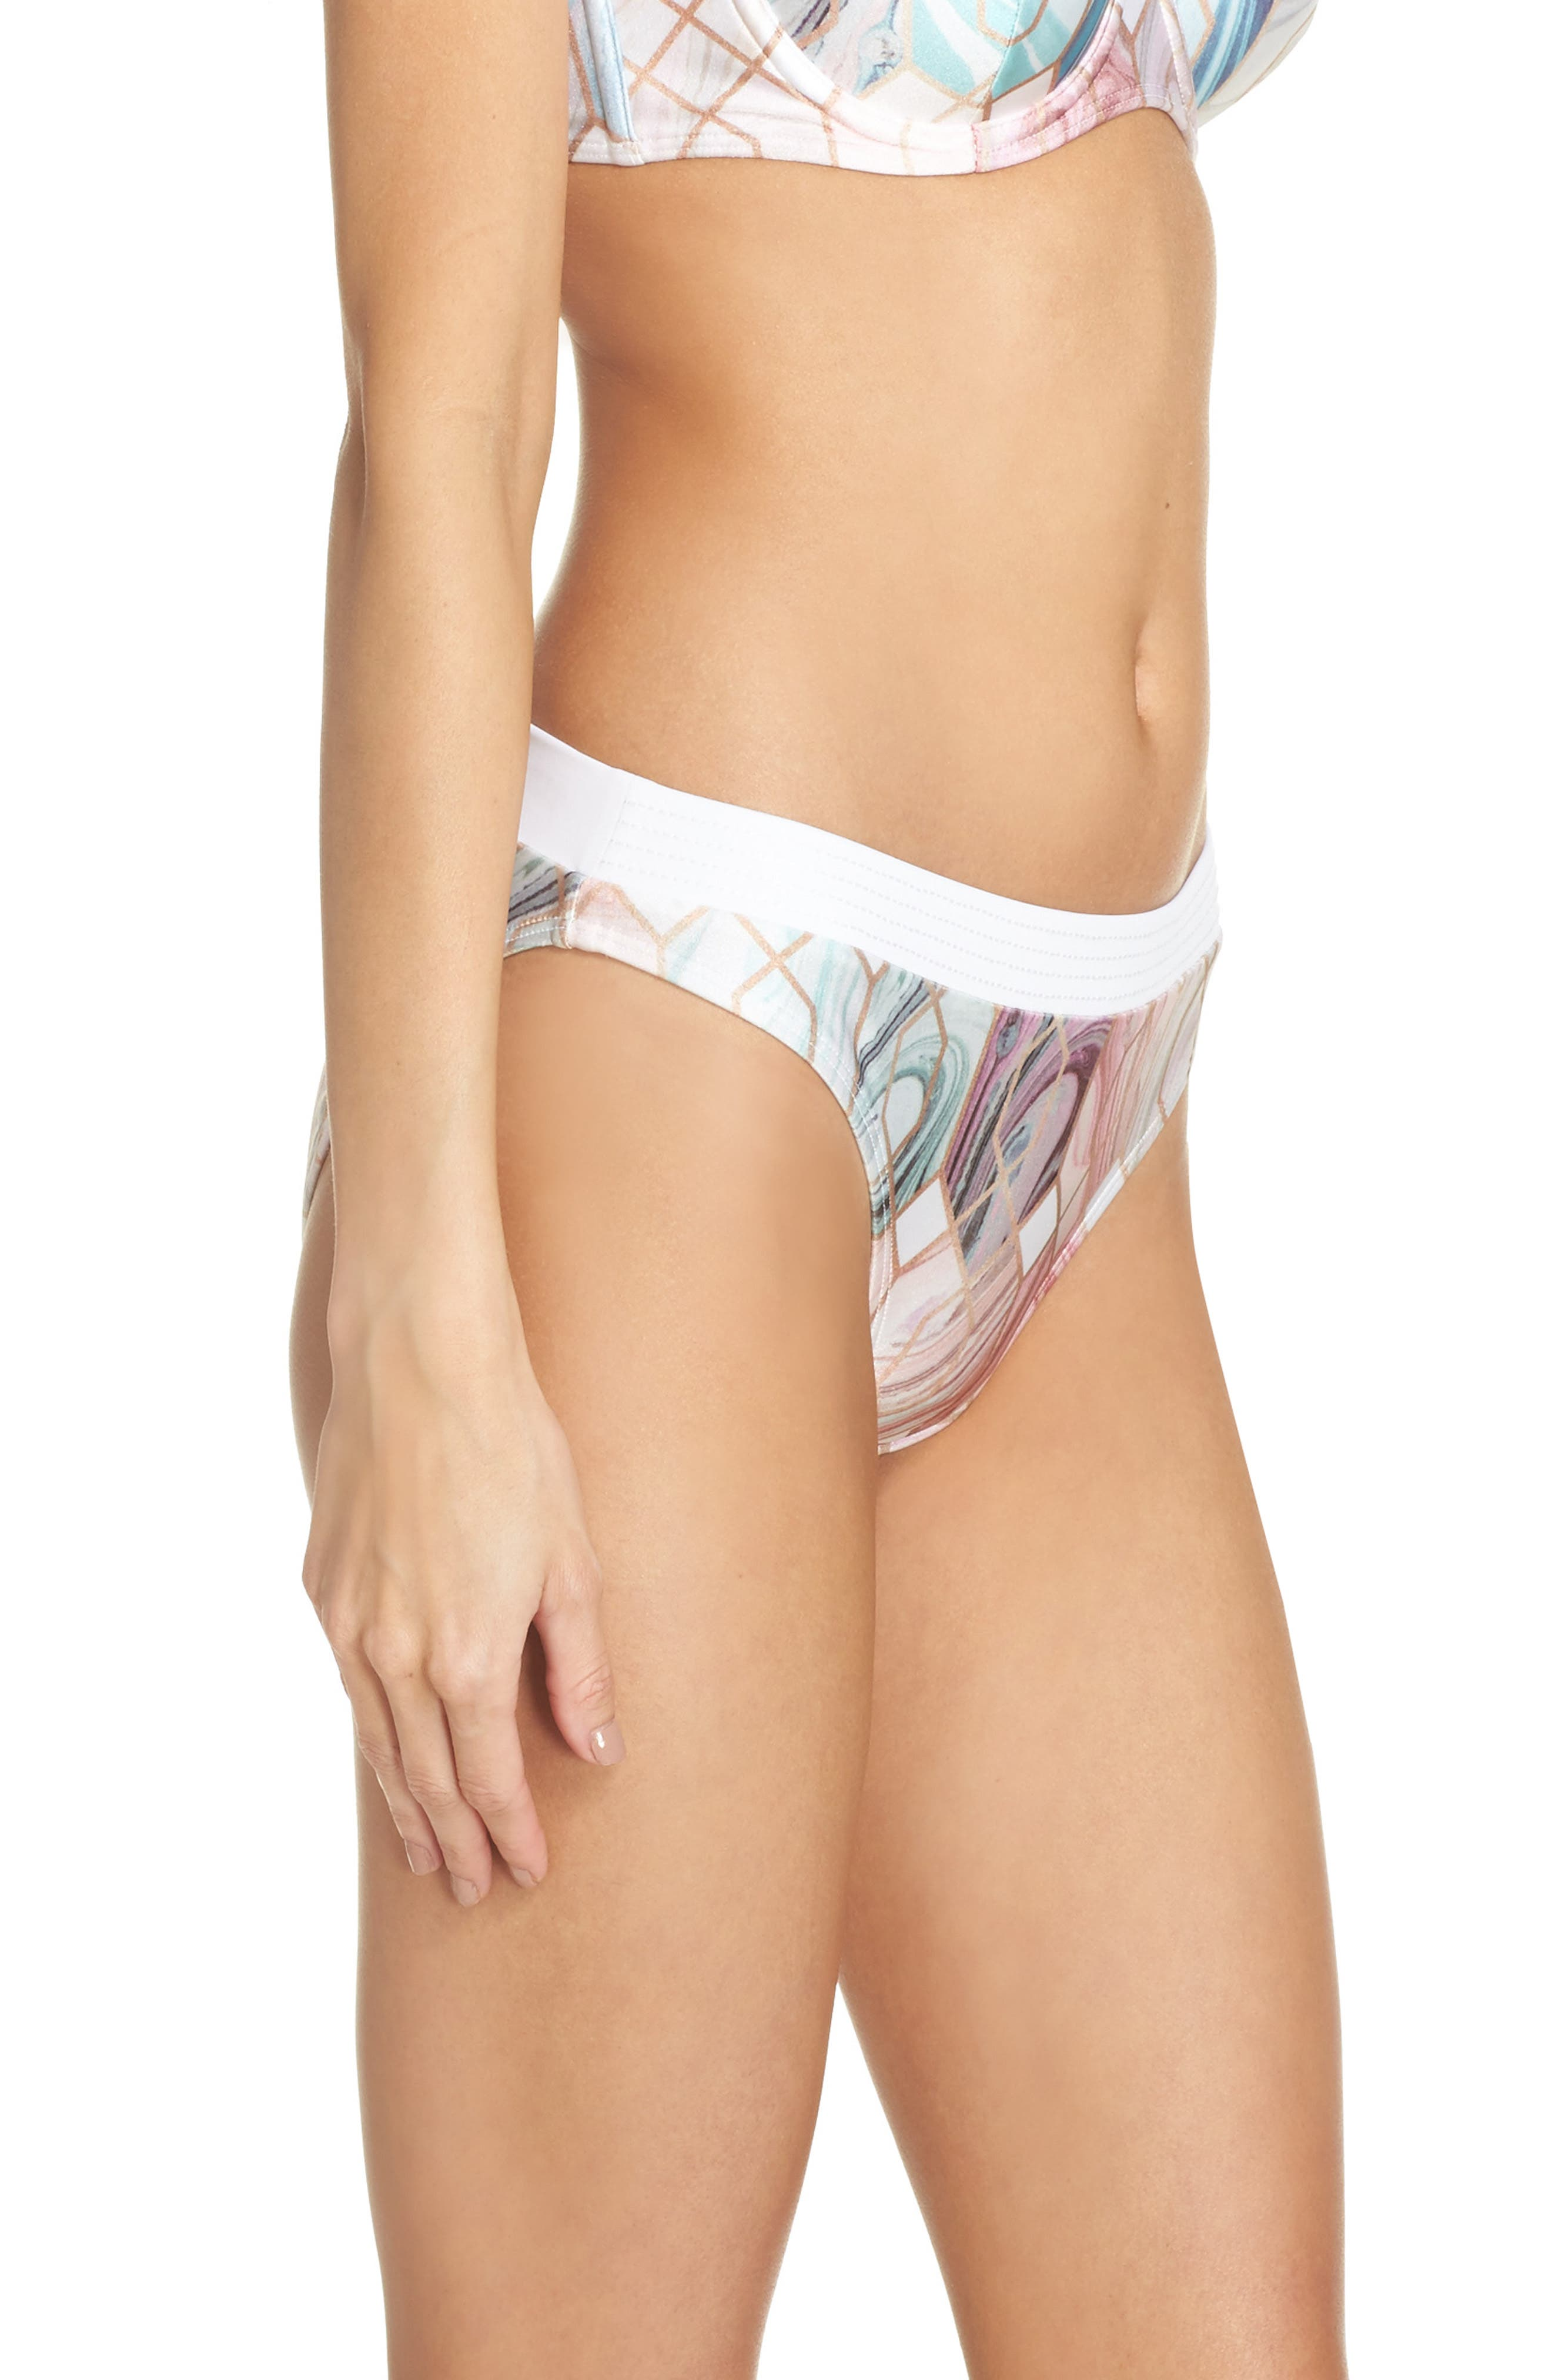 Sea of Clouds Hipster Bikini Bottoms,                             Alternate thumbnail 3, color,                             110